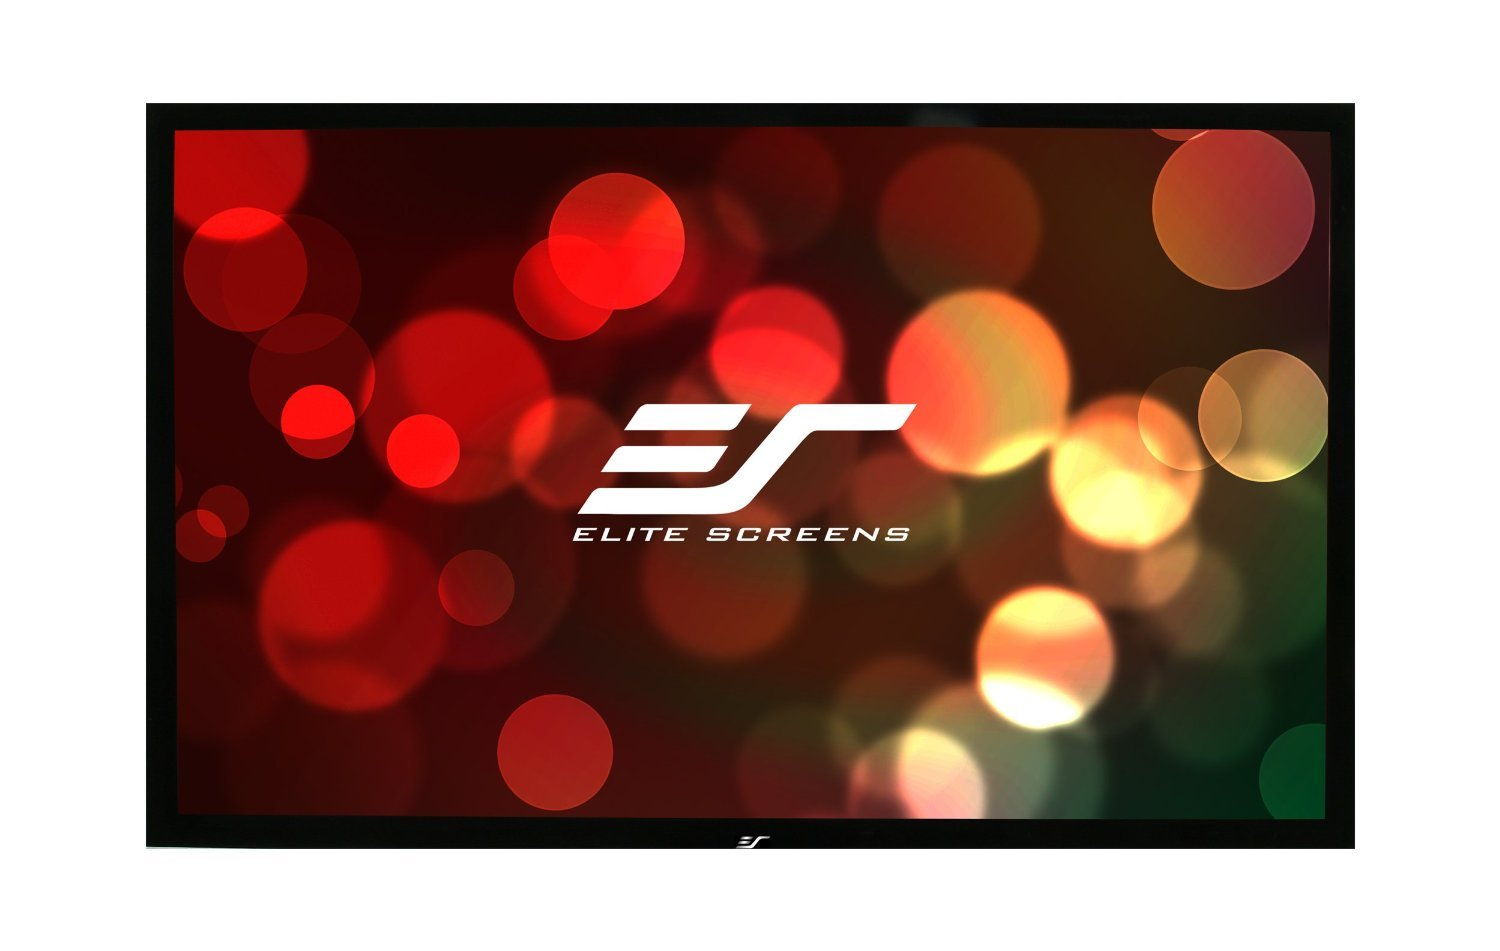 Elite Screens ezFrame Plus Series, 250-inch Diagonal 16:9, Fixed Frame Home Theater Projection Screen, Model: R250WH1 PLUS